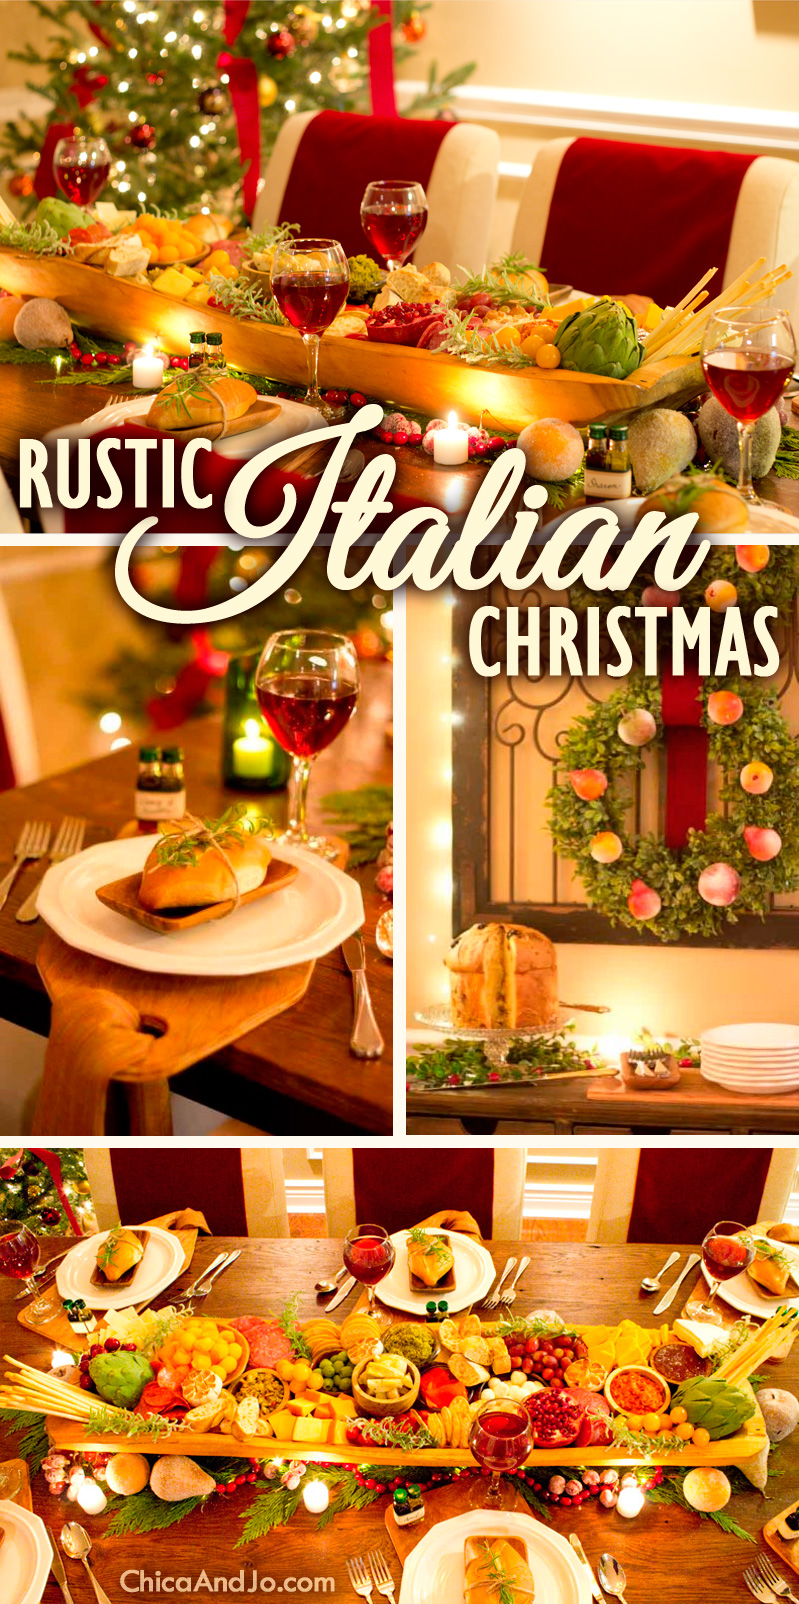 Rustic Italian Christmas Table Decorations Chica And Jo